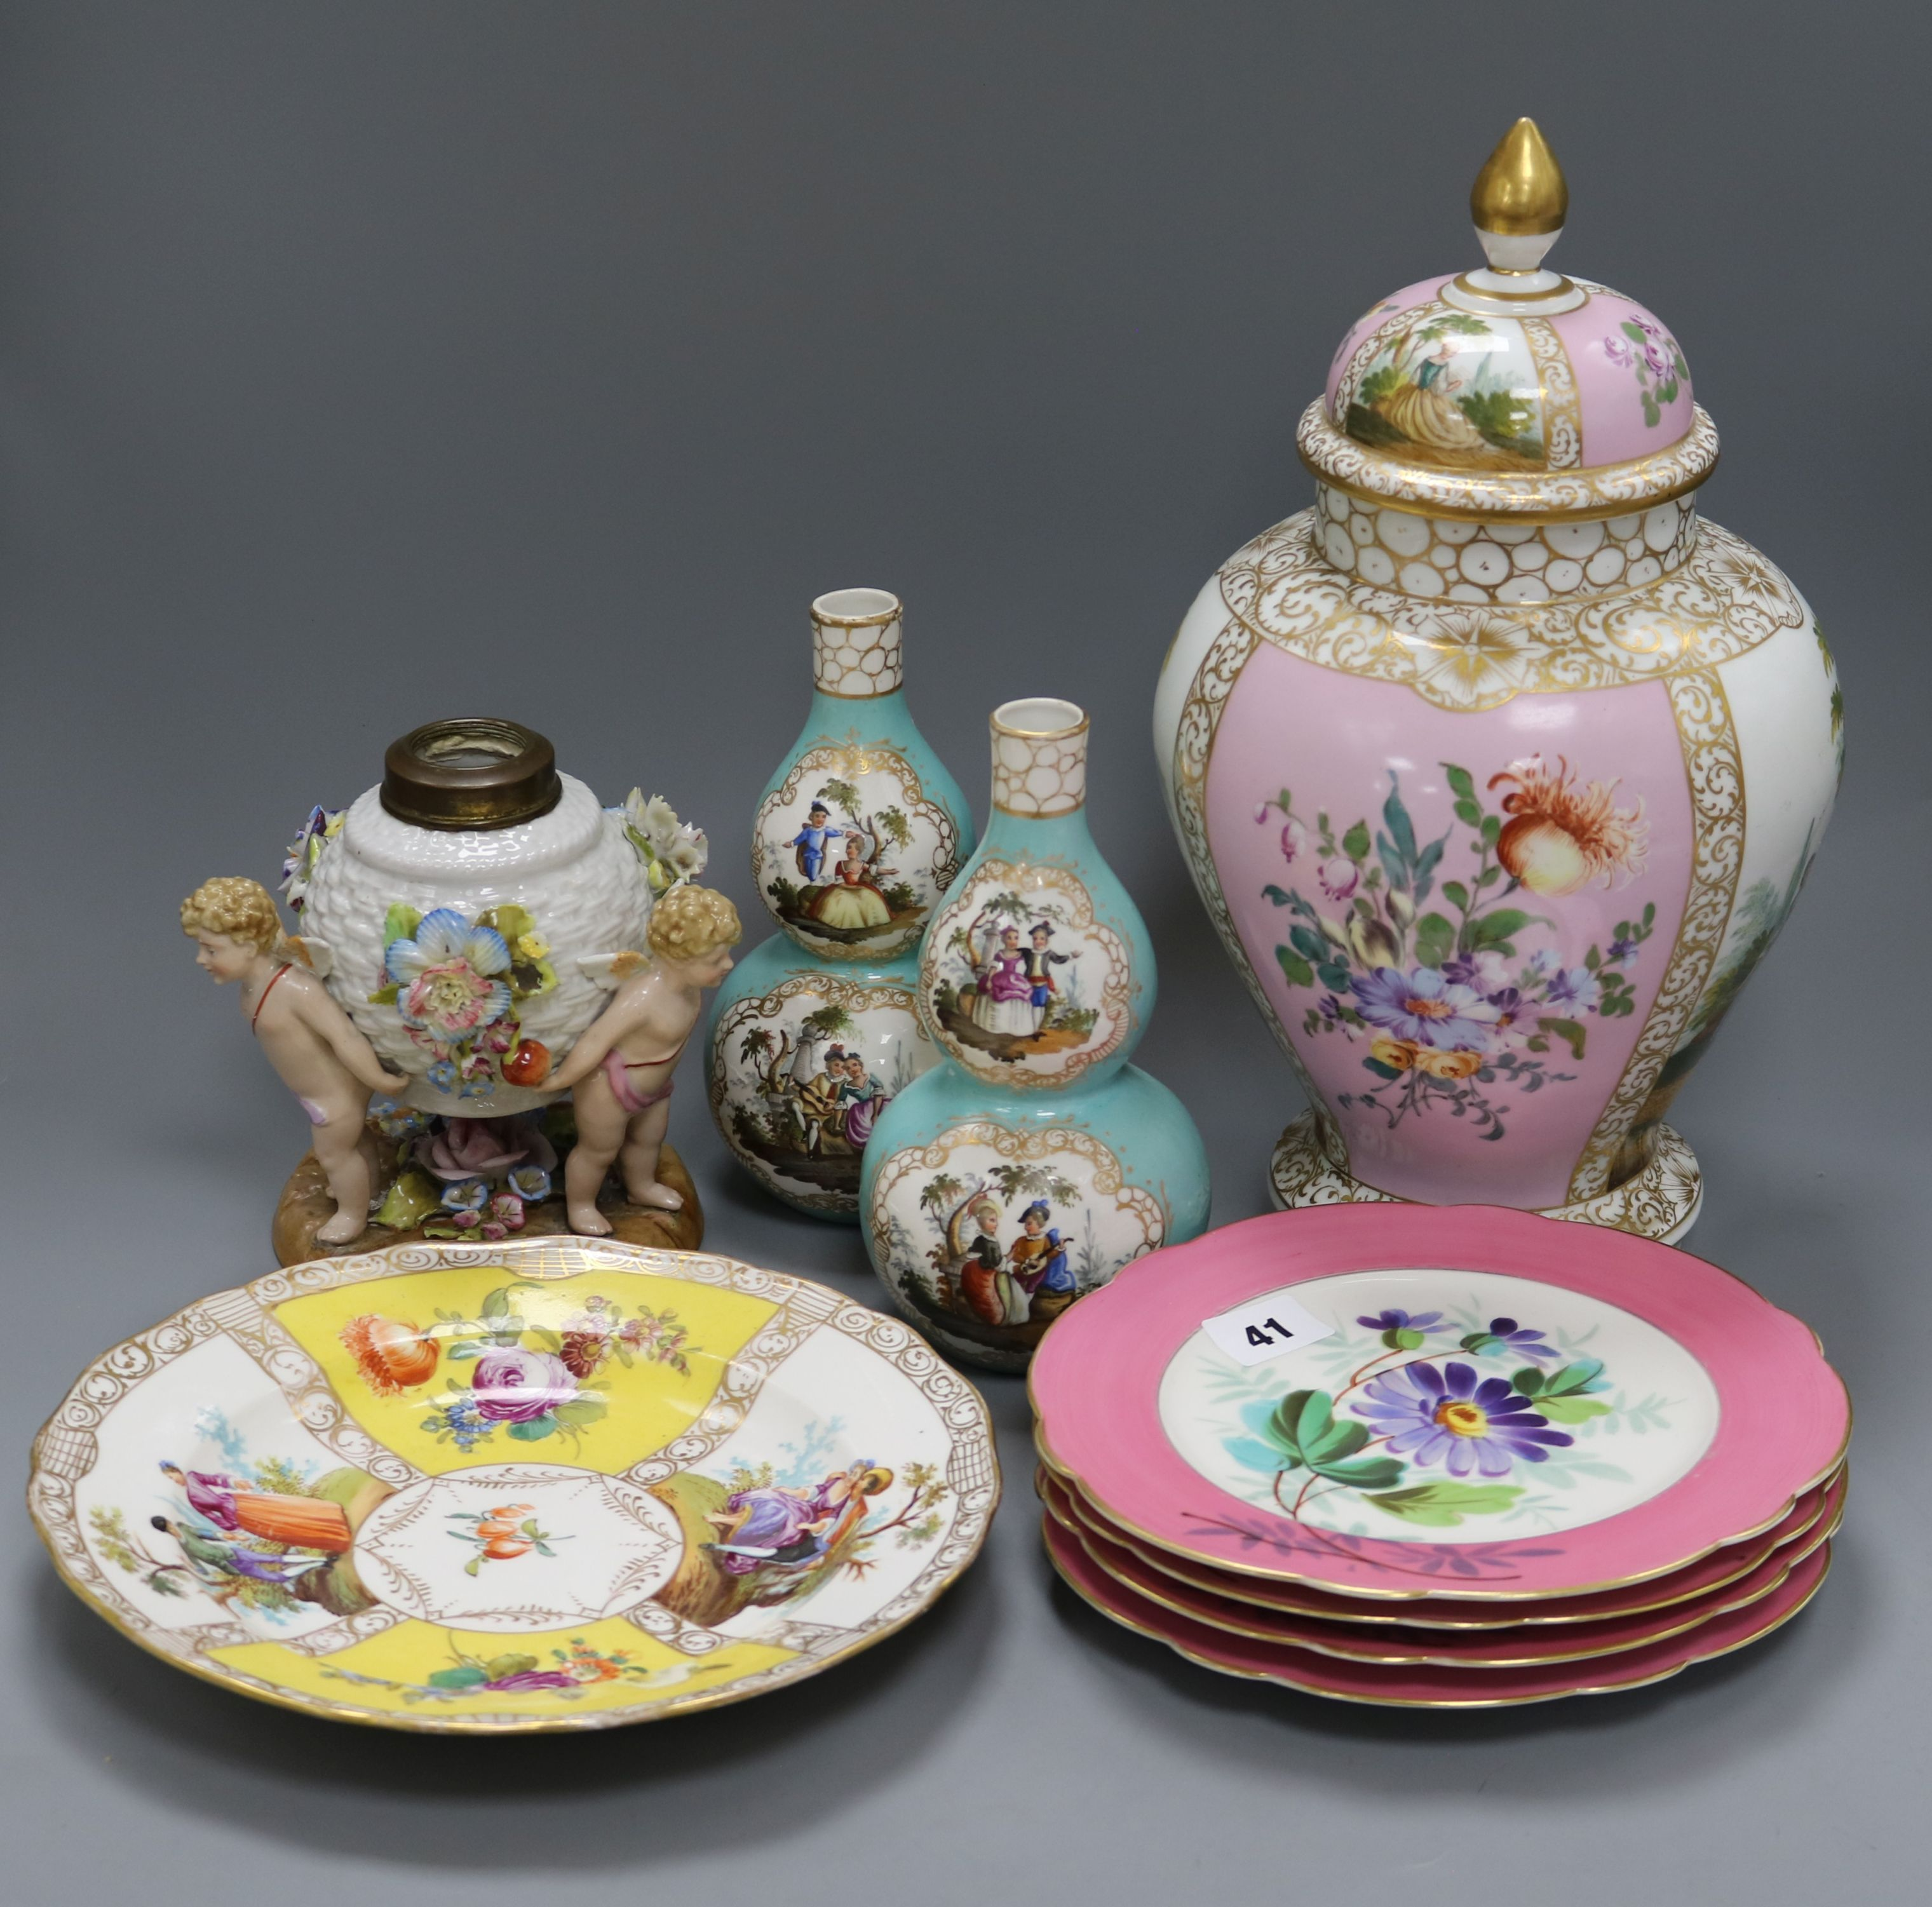 Lot 41 - A Crown Dresden jar and cover, a pair of double gourd vases, a figural oil lamp, a Dresden plate and